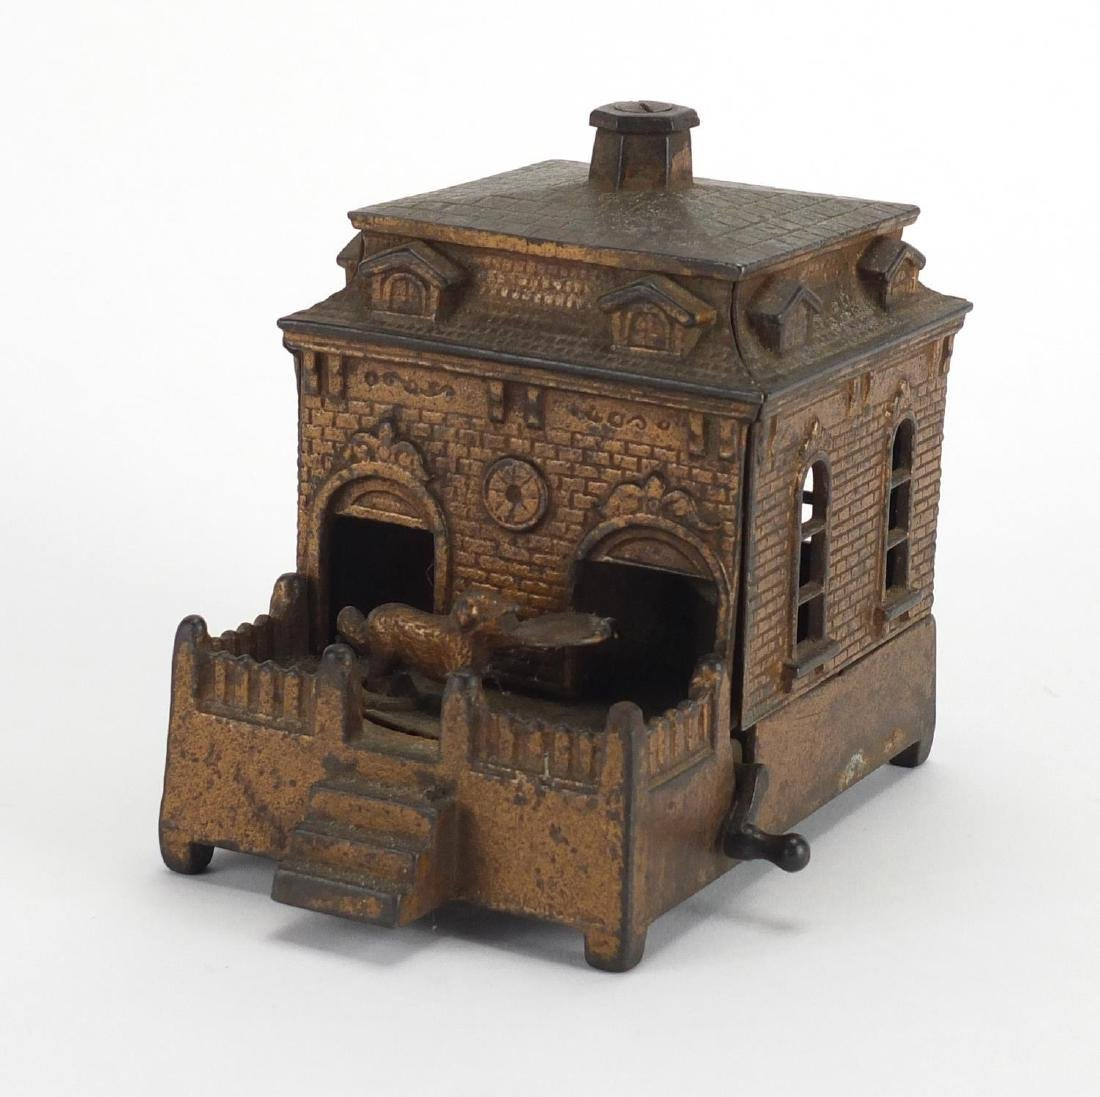 Novelty cast iron money box in the form of a dog rotating in and out of a house, 14cm in length